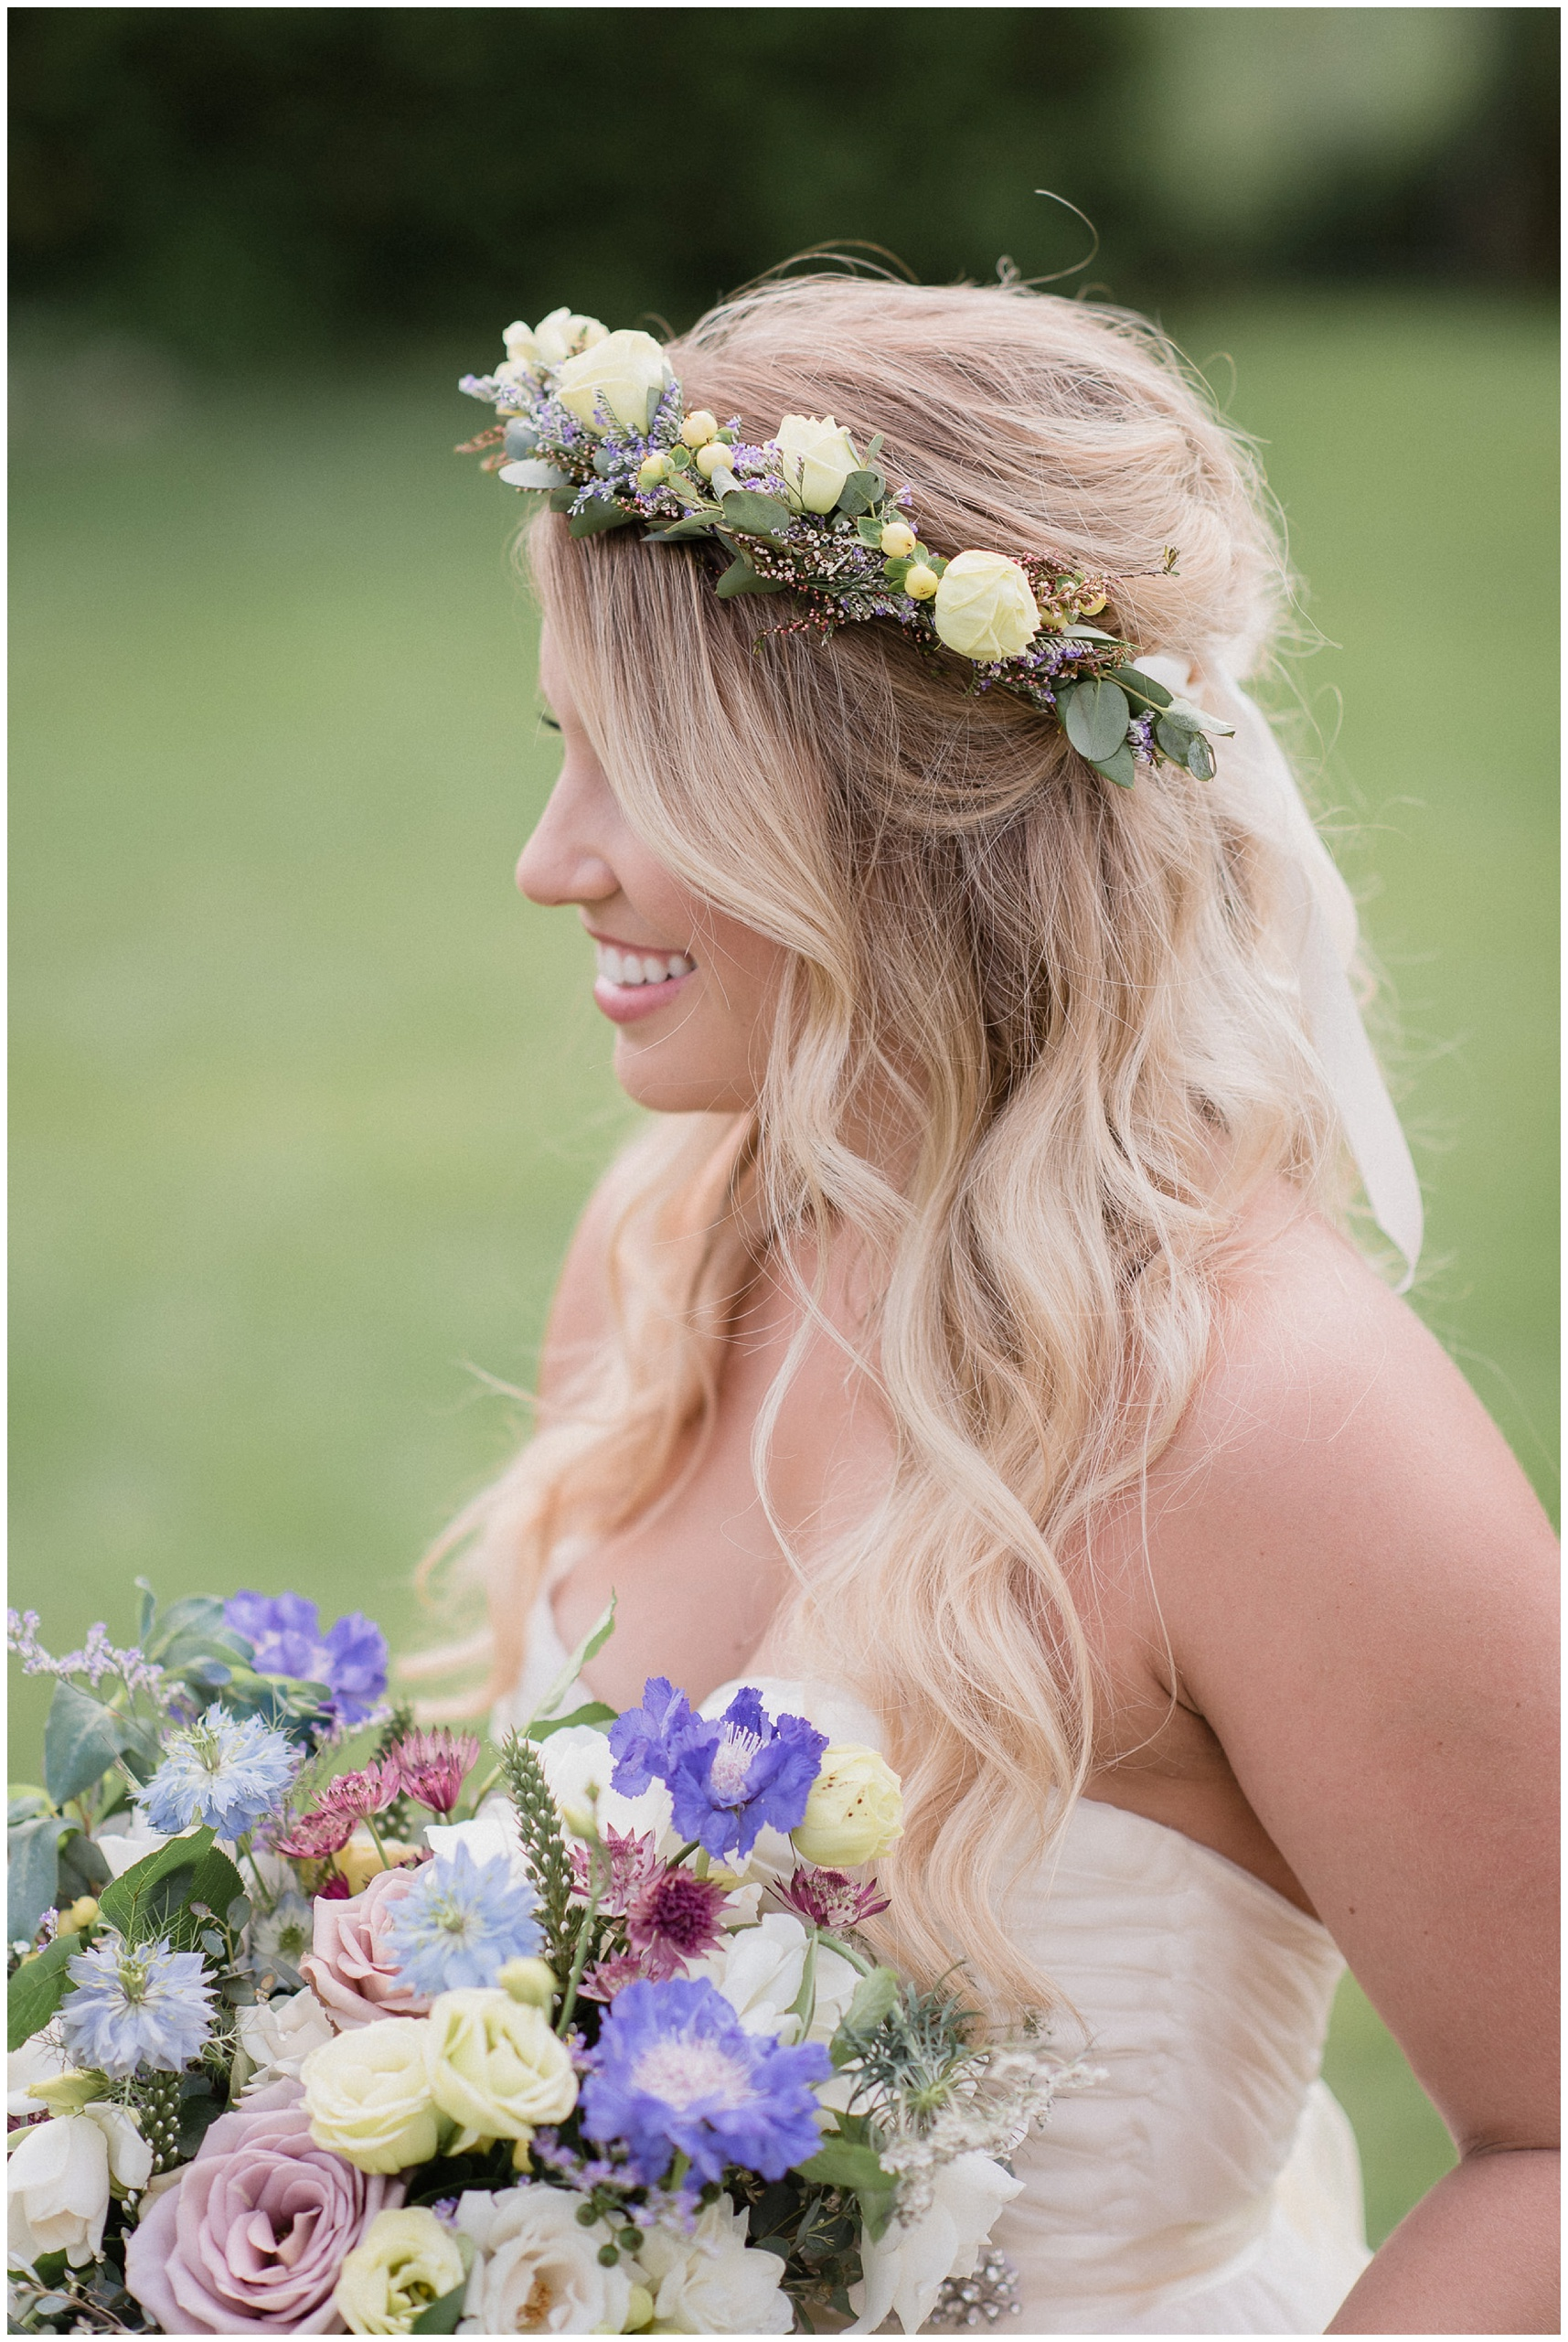 Garden party flower crown by Coriander Girl, photographed by Jenn Kavanagh Photography